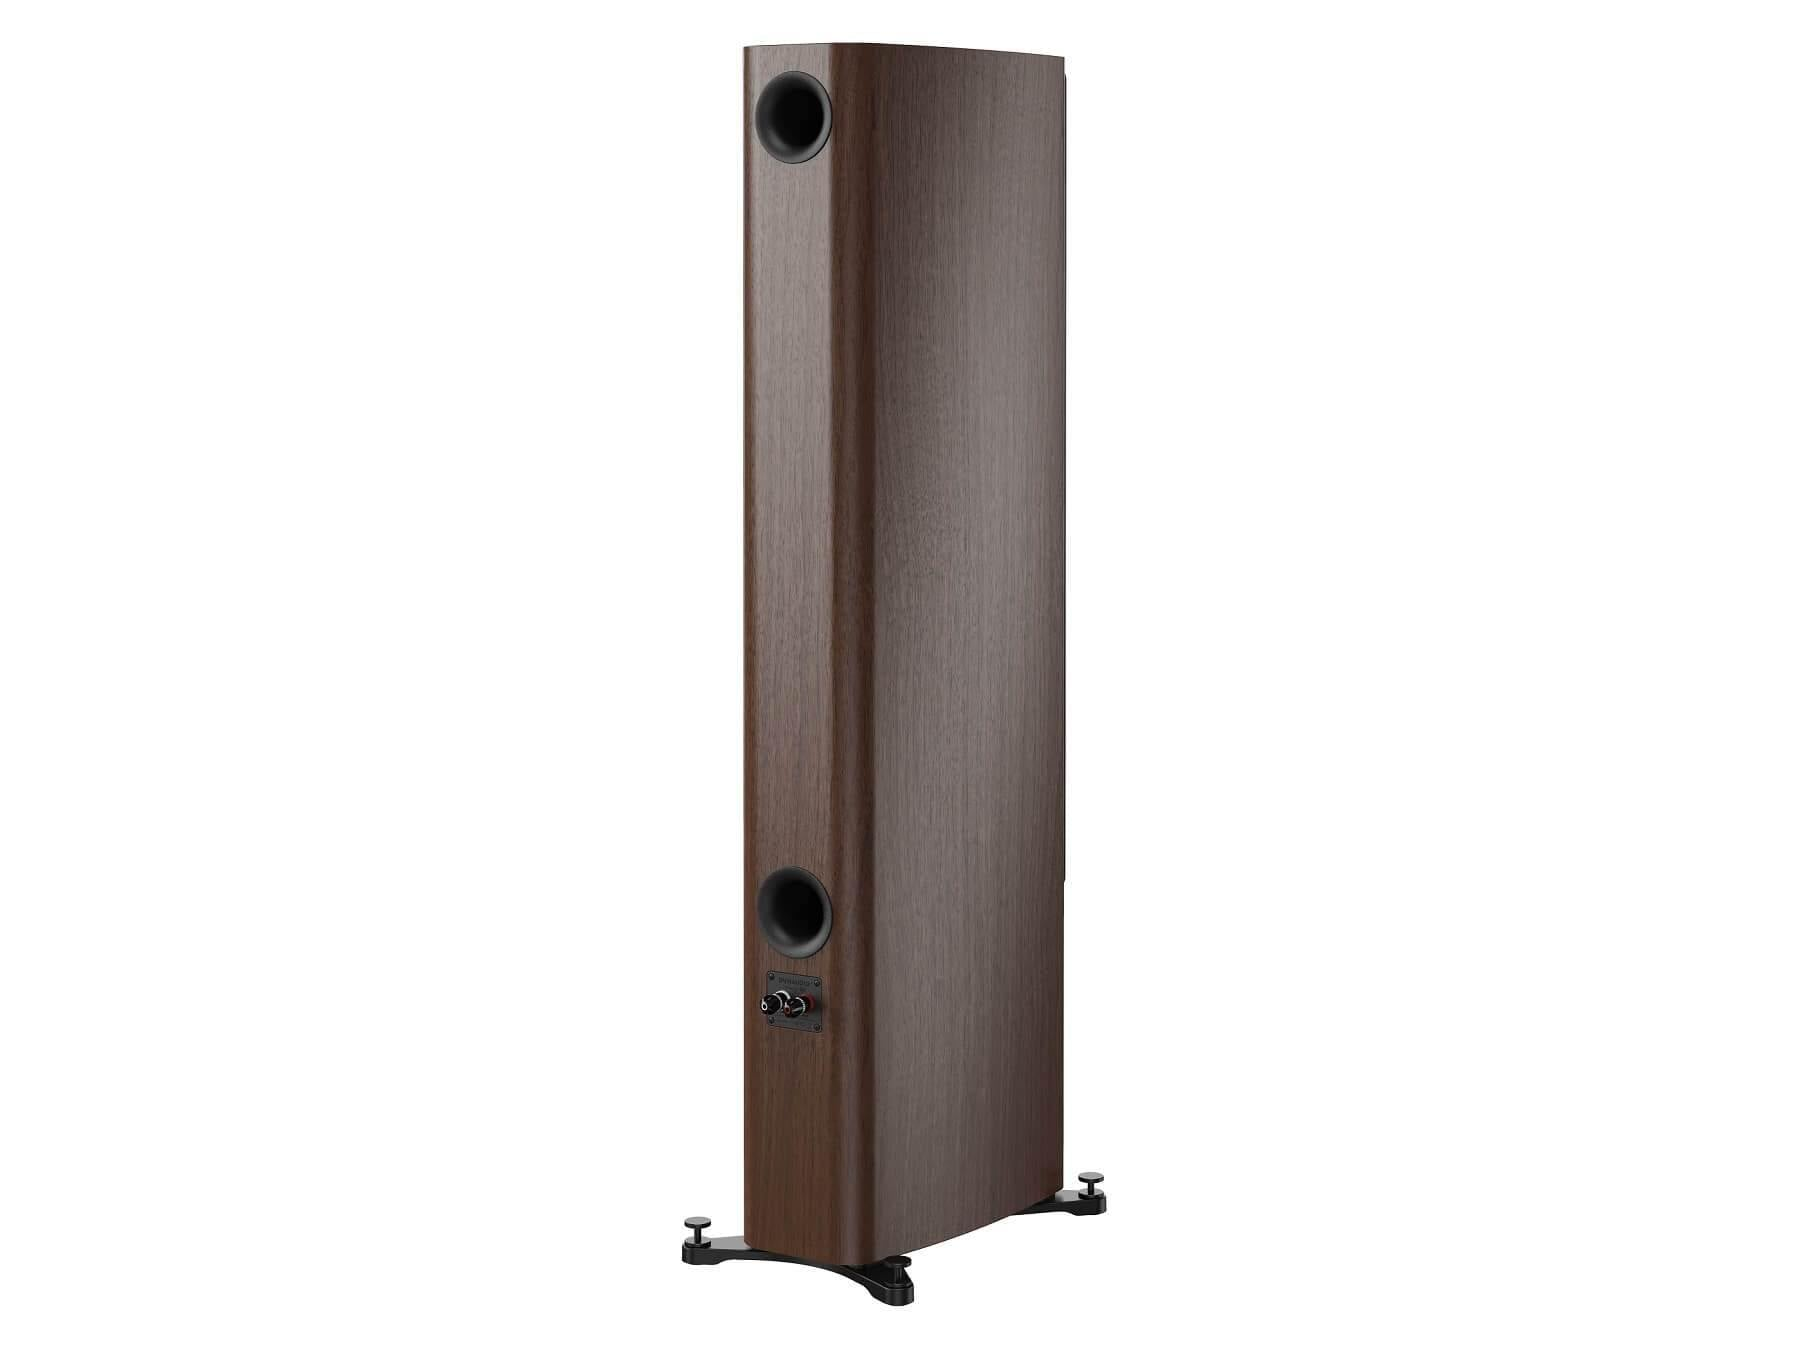 Dynaudio Contour 60i - Floorstanding Speakers - Walnut 4